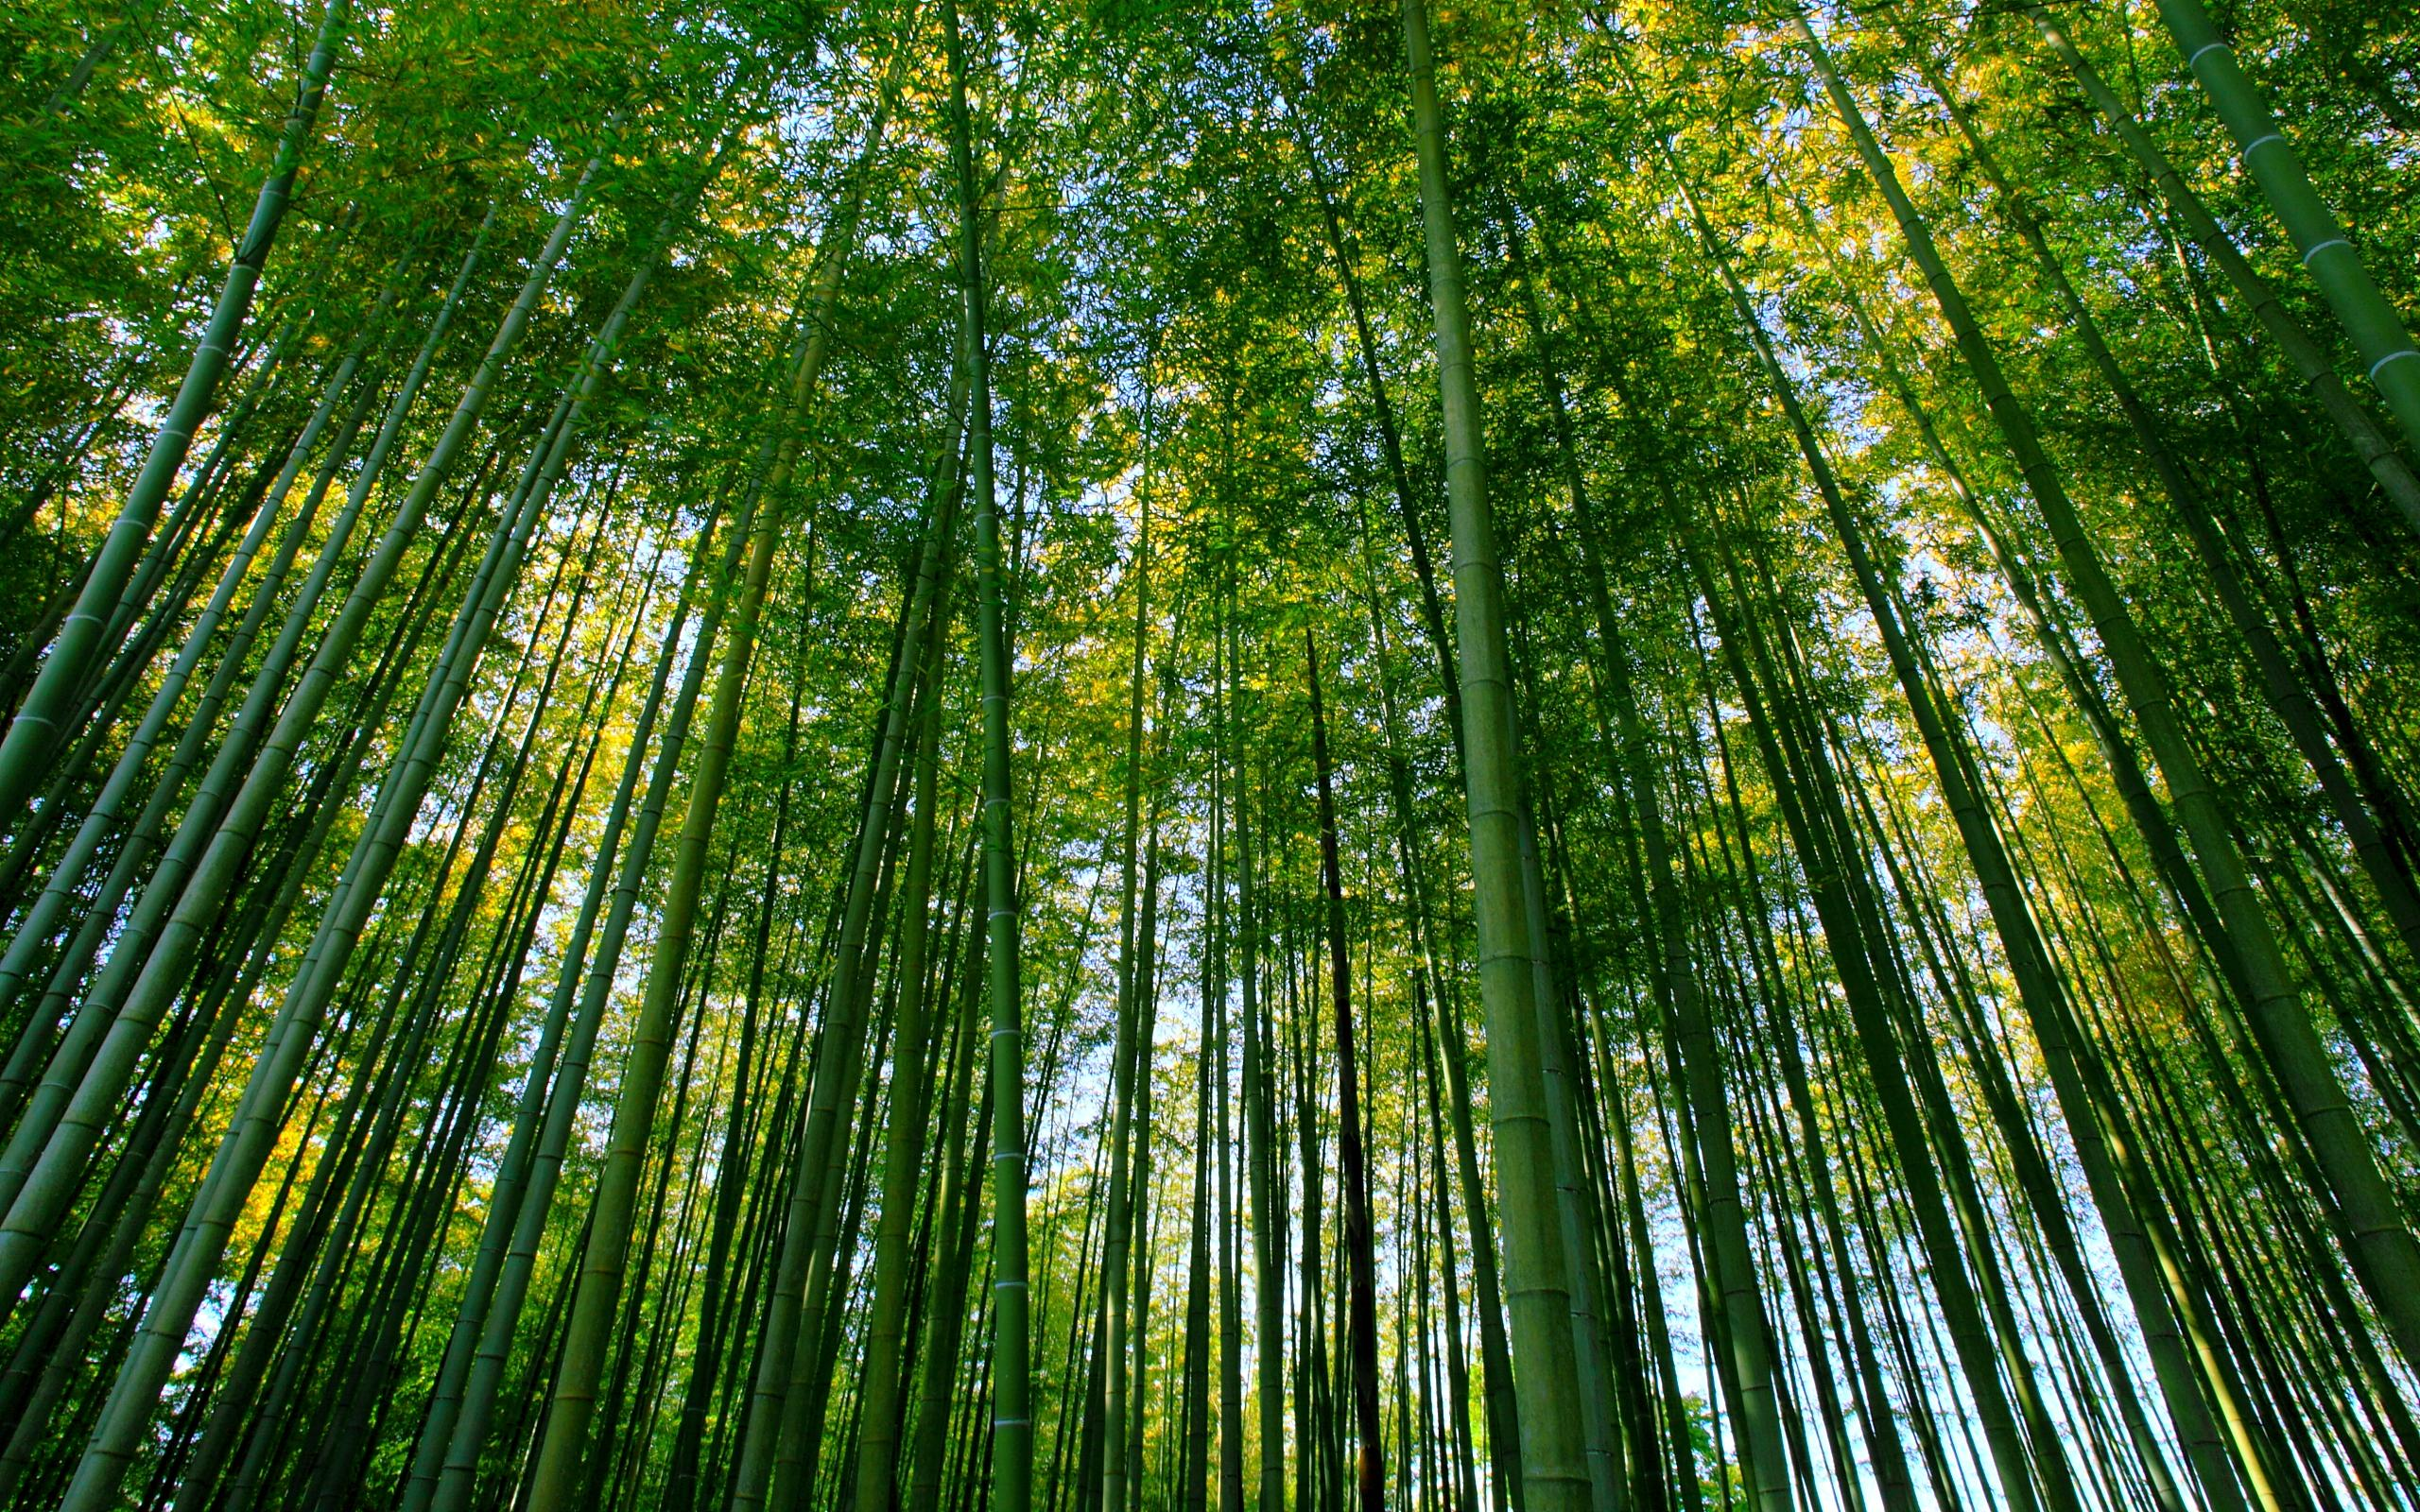 bamboo forest wallpaper background 48865 2560x1600px